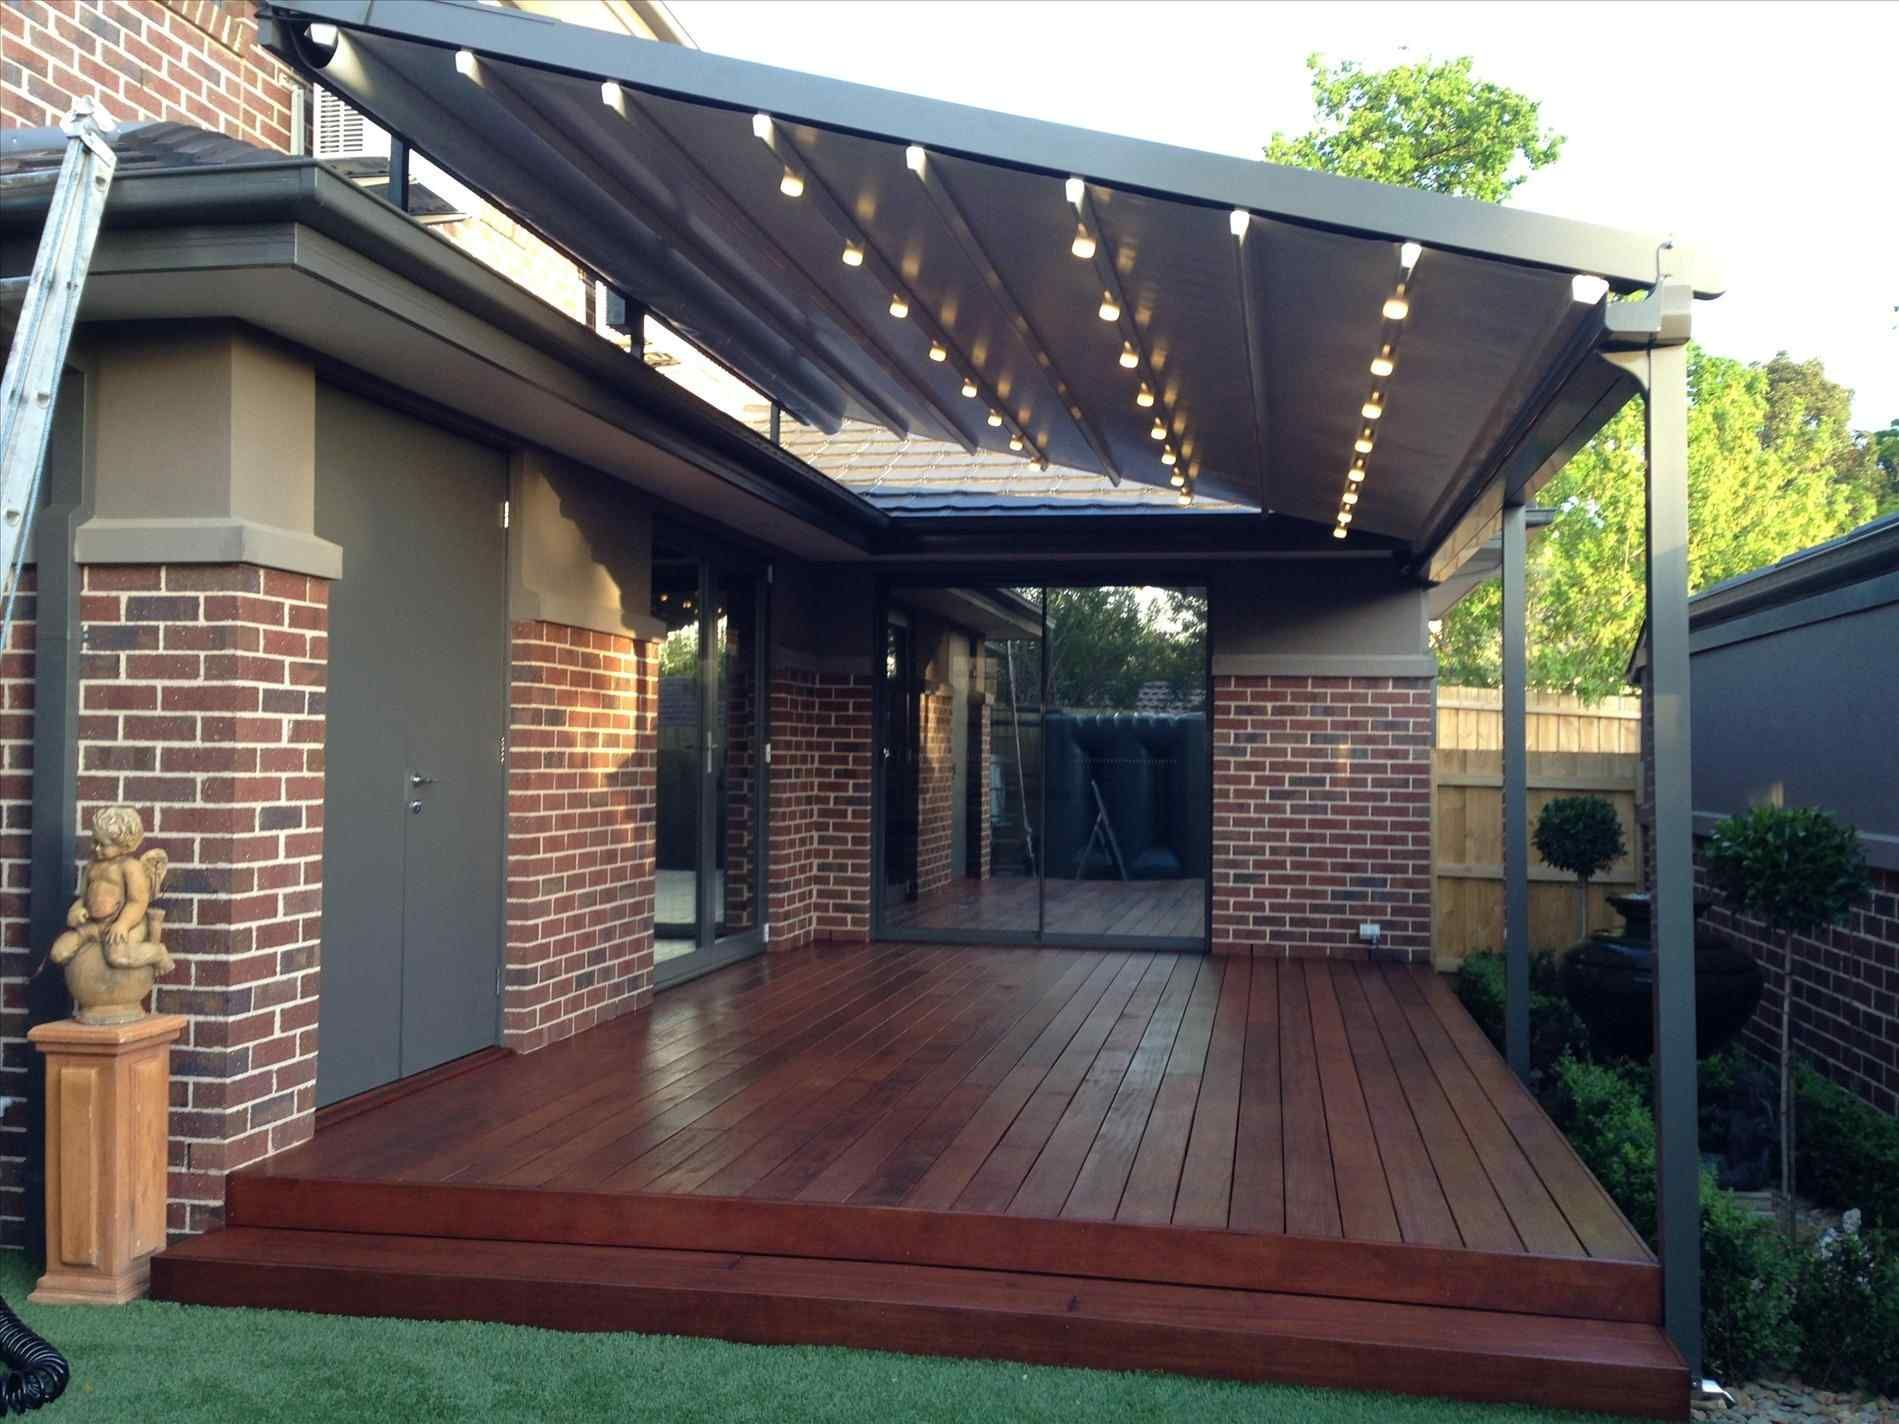 Patio Deck Roofing Options Roofing Brisbane Installation Custom Cooldek Stratco Deck Roof Covering Options Design And Ideas Deck Deck Roofing Options Home Roo Outdoor Pergola Pergola Diy Patio Cover